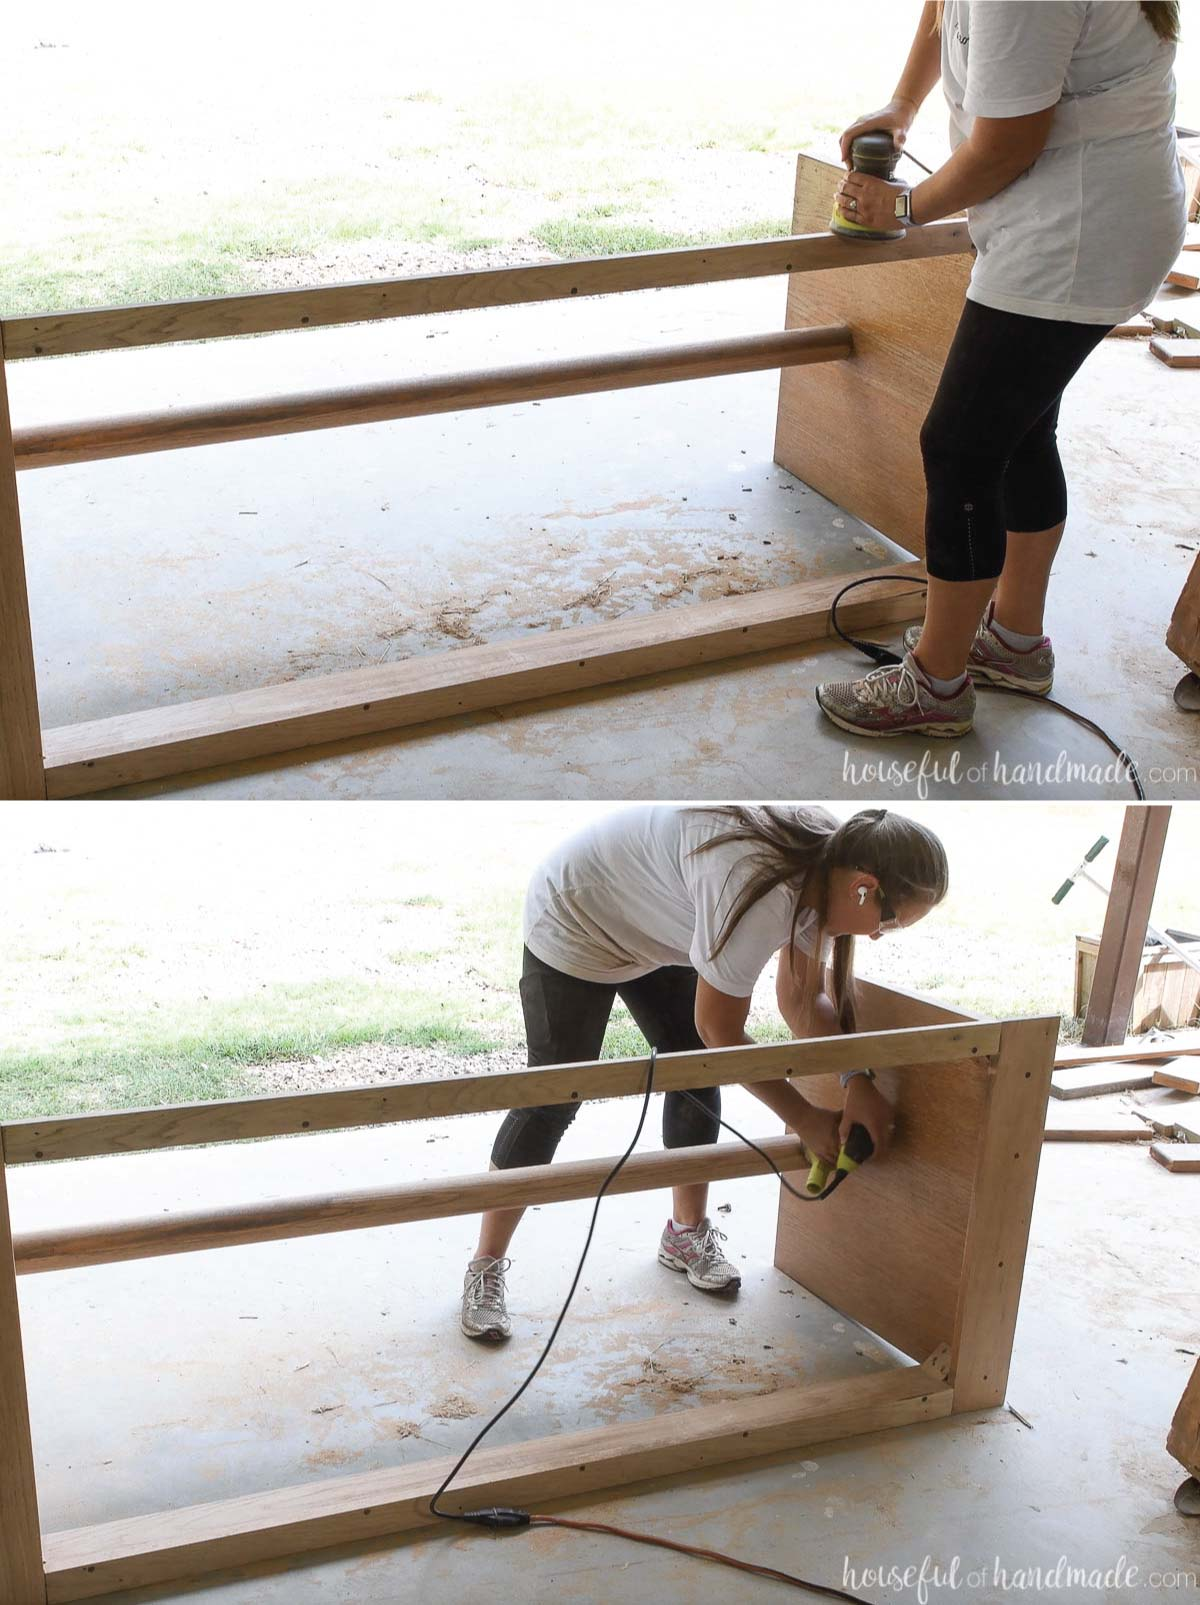 Two pictures showing sanding the base of a table with an orbital sander.